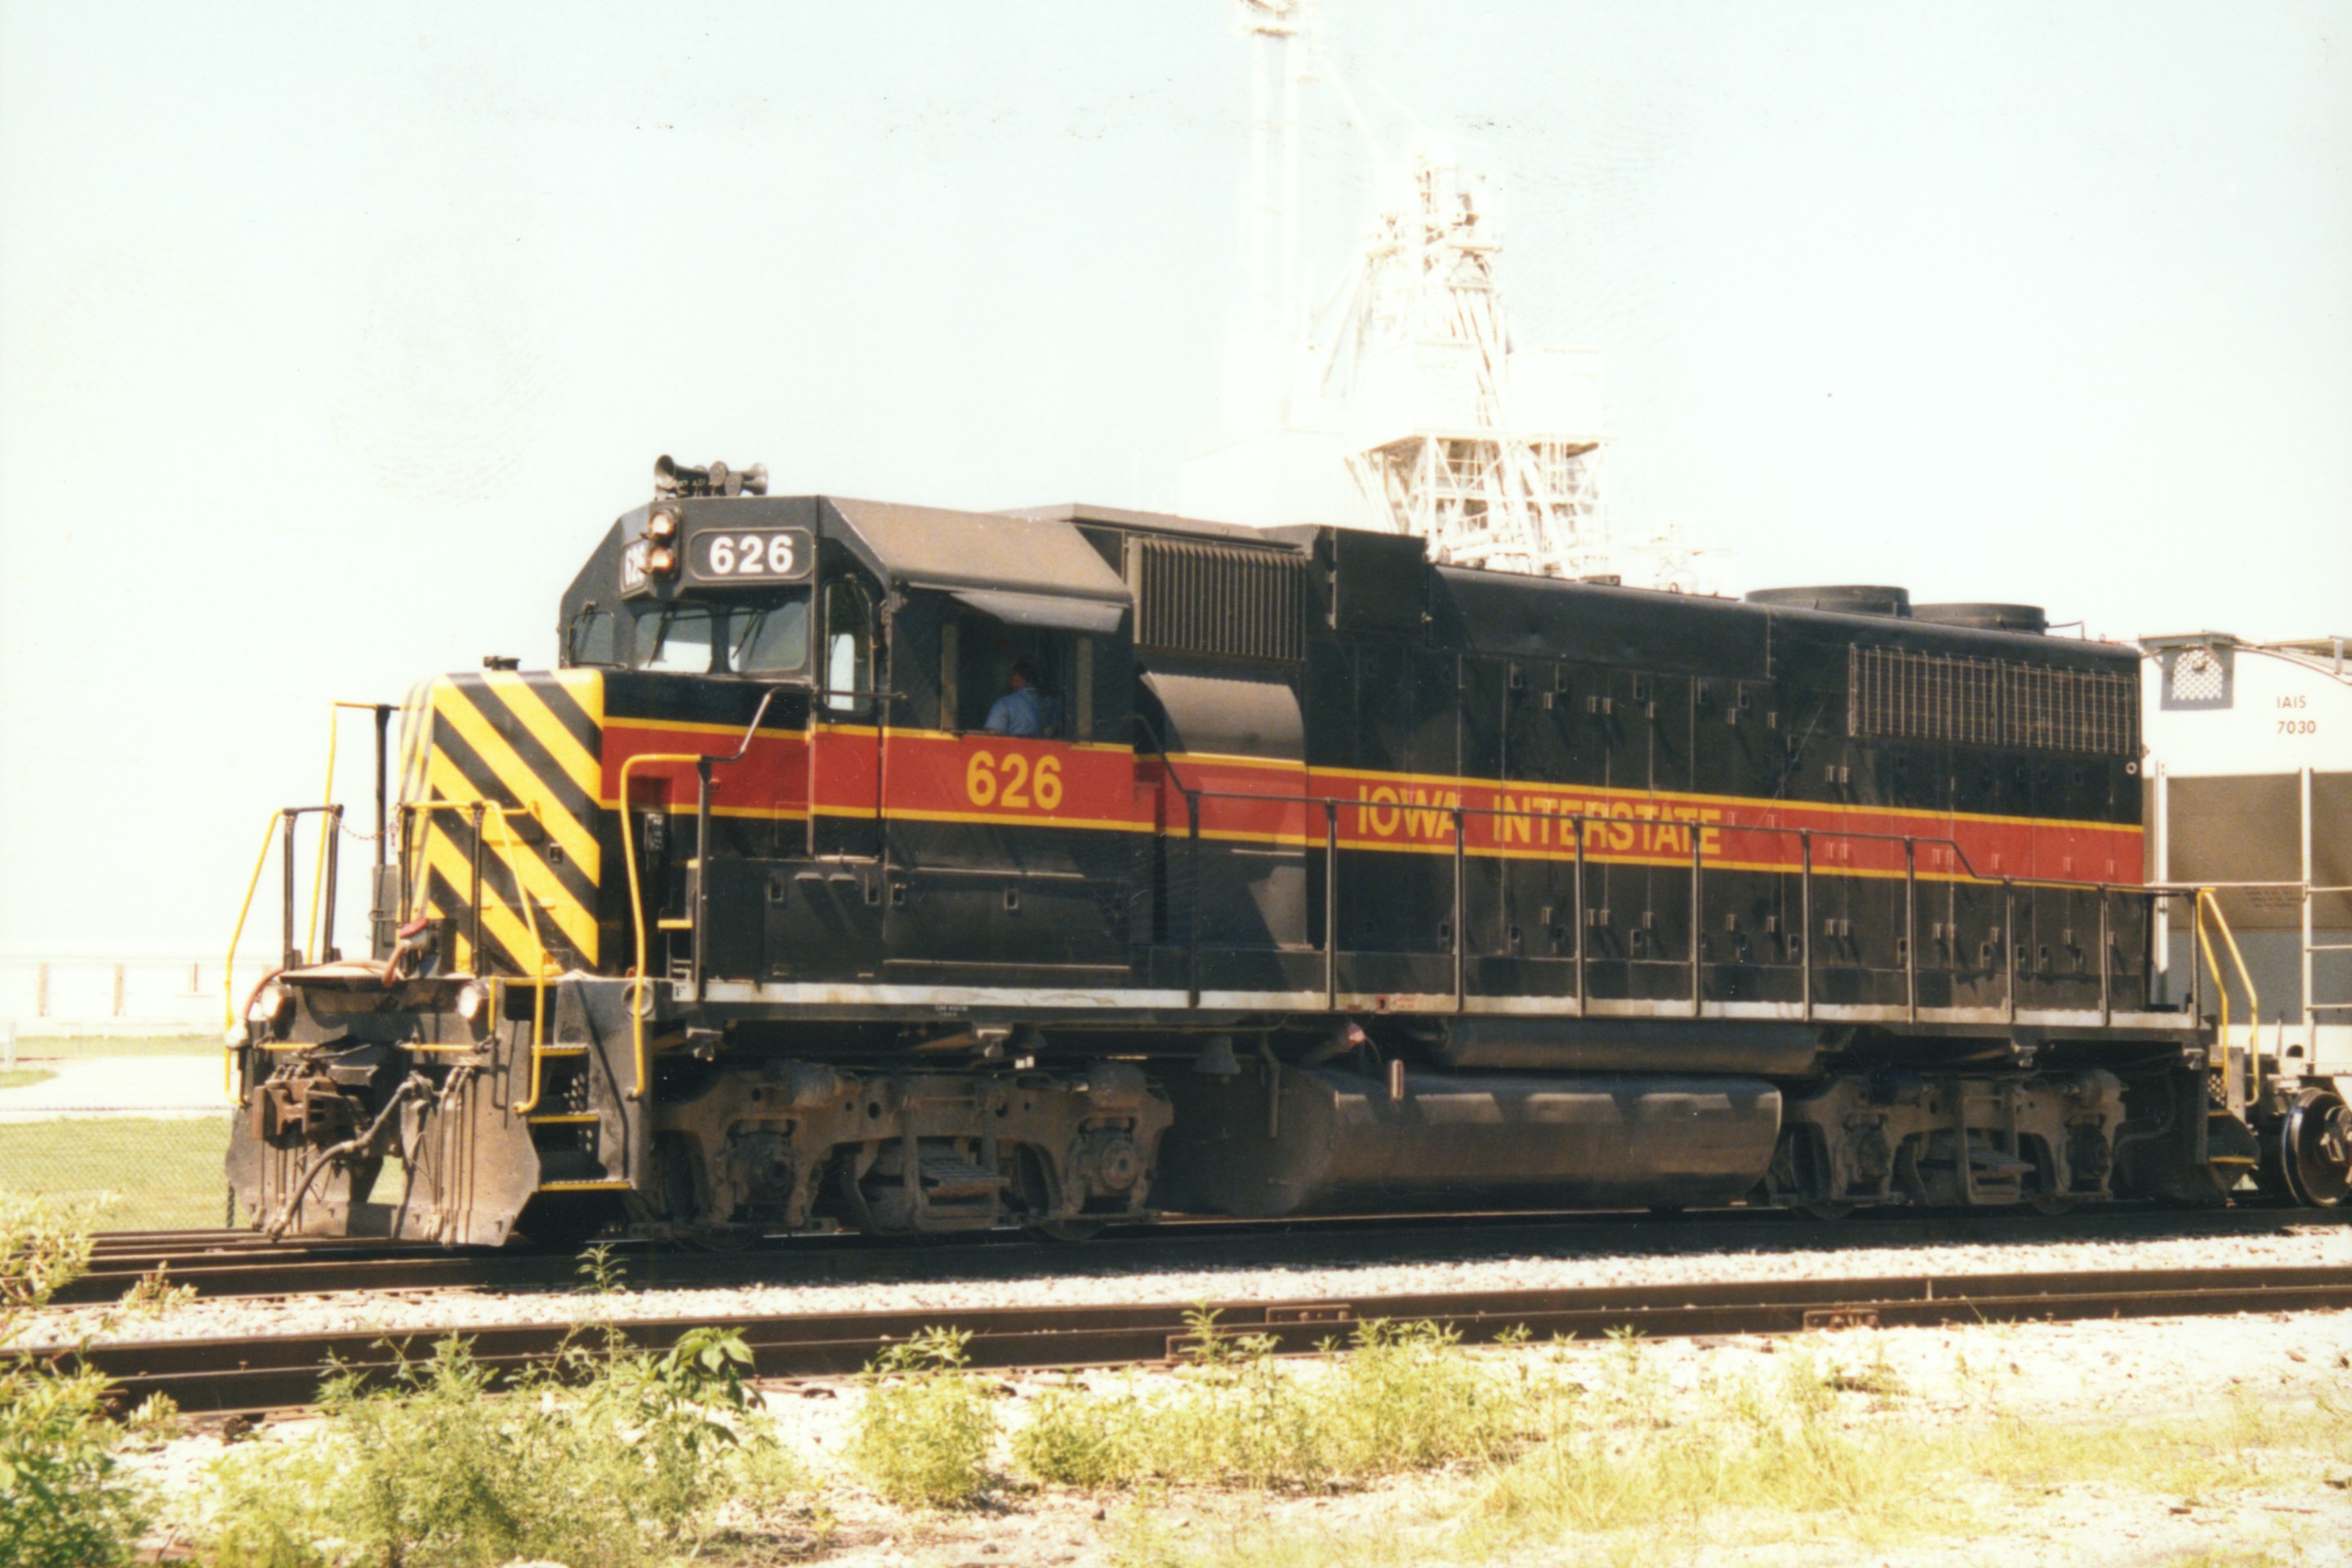 IAIS 626 at Altoona, IA on 02-Aug-1997